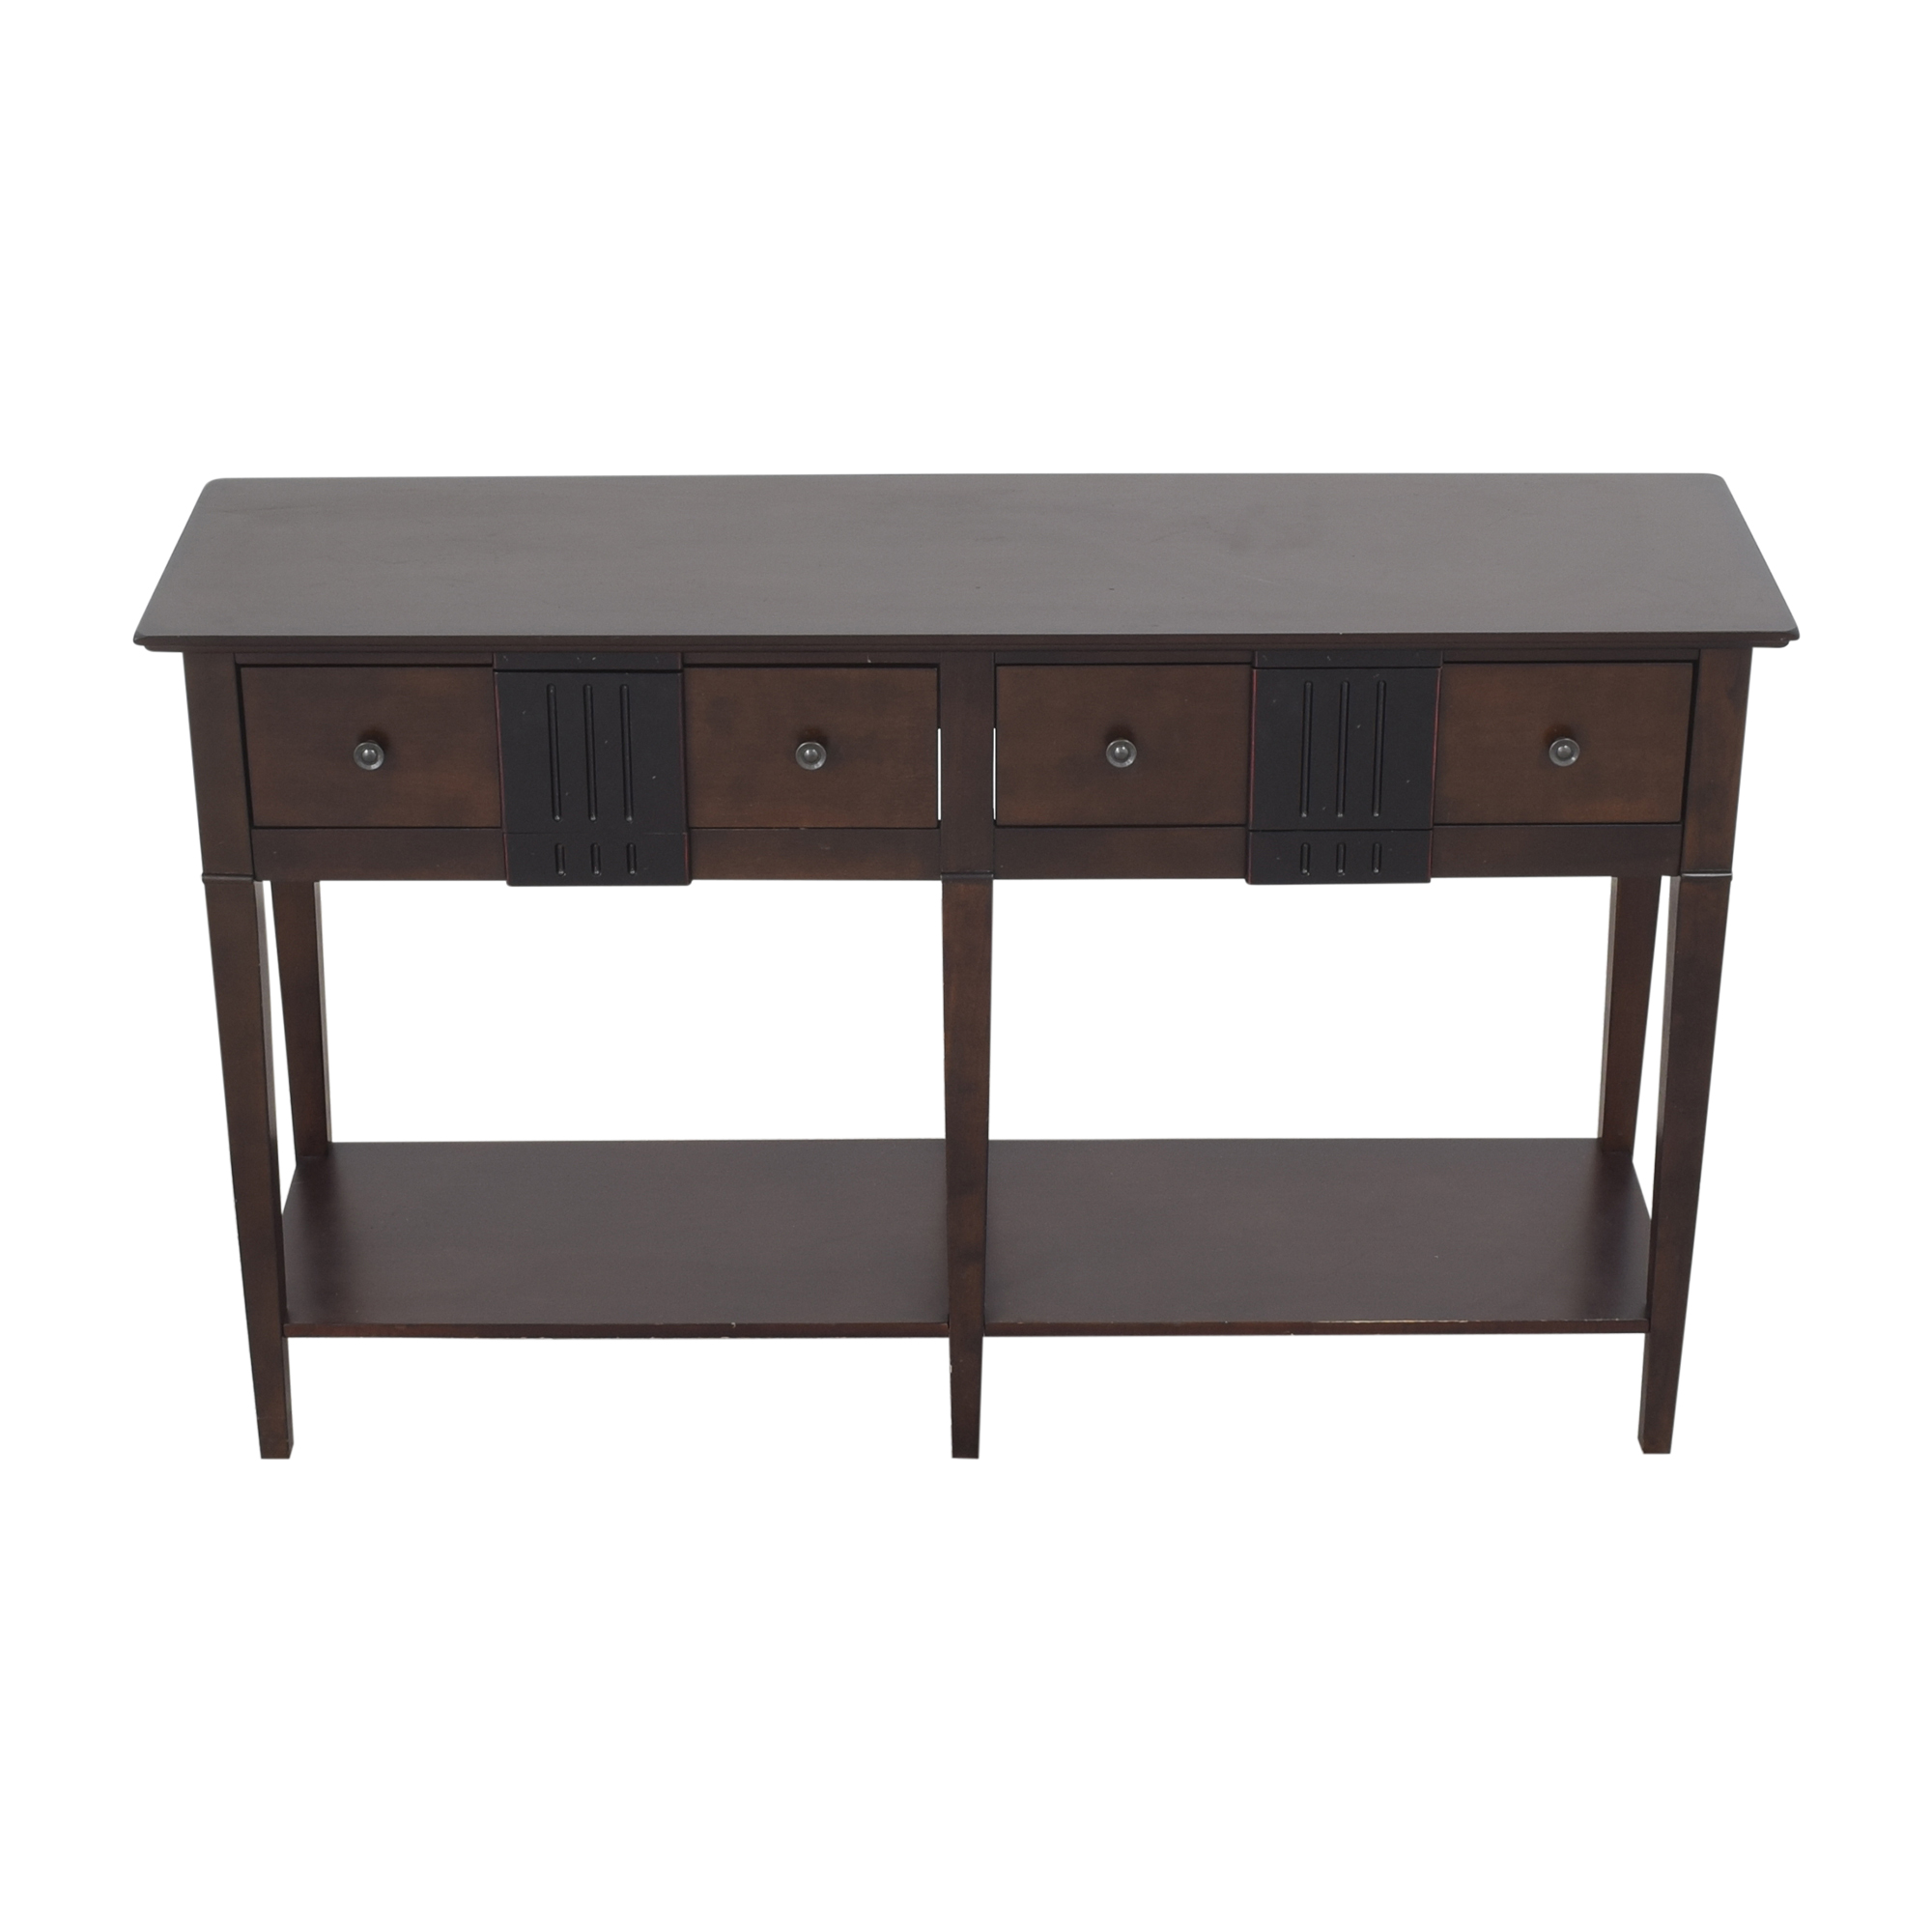 Pier 1 Pier 1 Two Drawer Console Table coupon